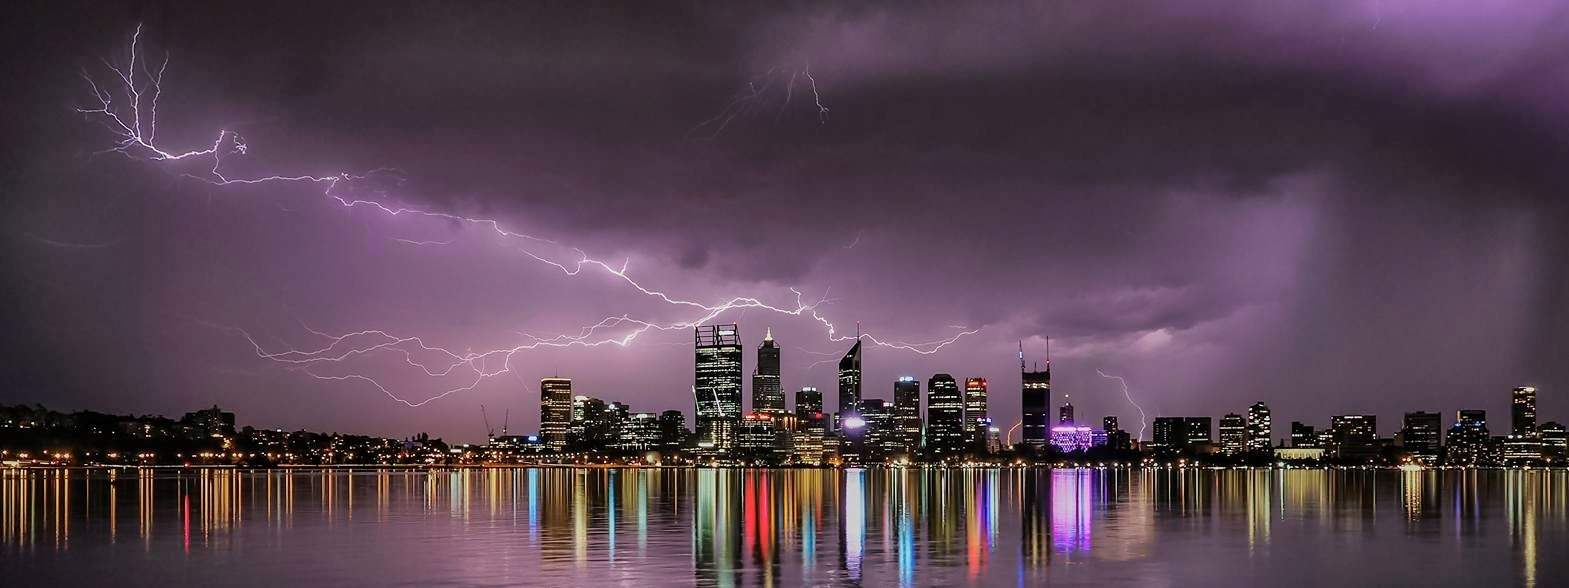 Haven't had a good storm for awhile,  This was taken earlier this year when Perth had about 4 days of excitement